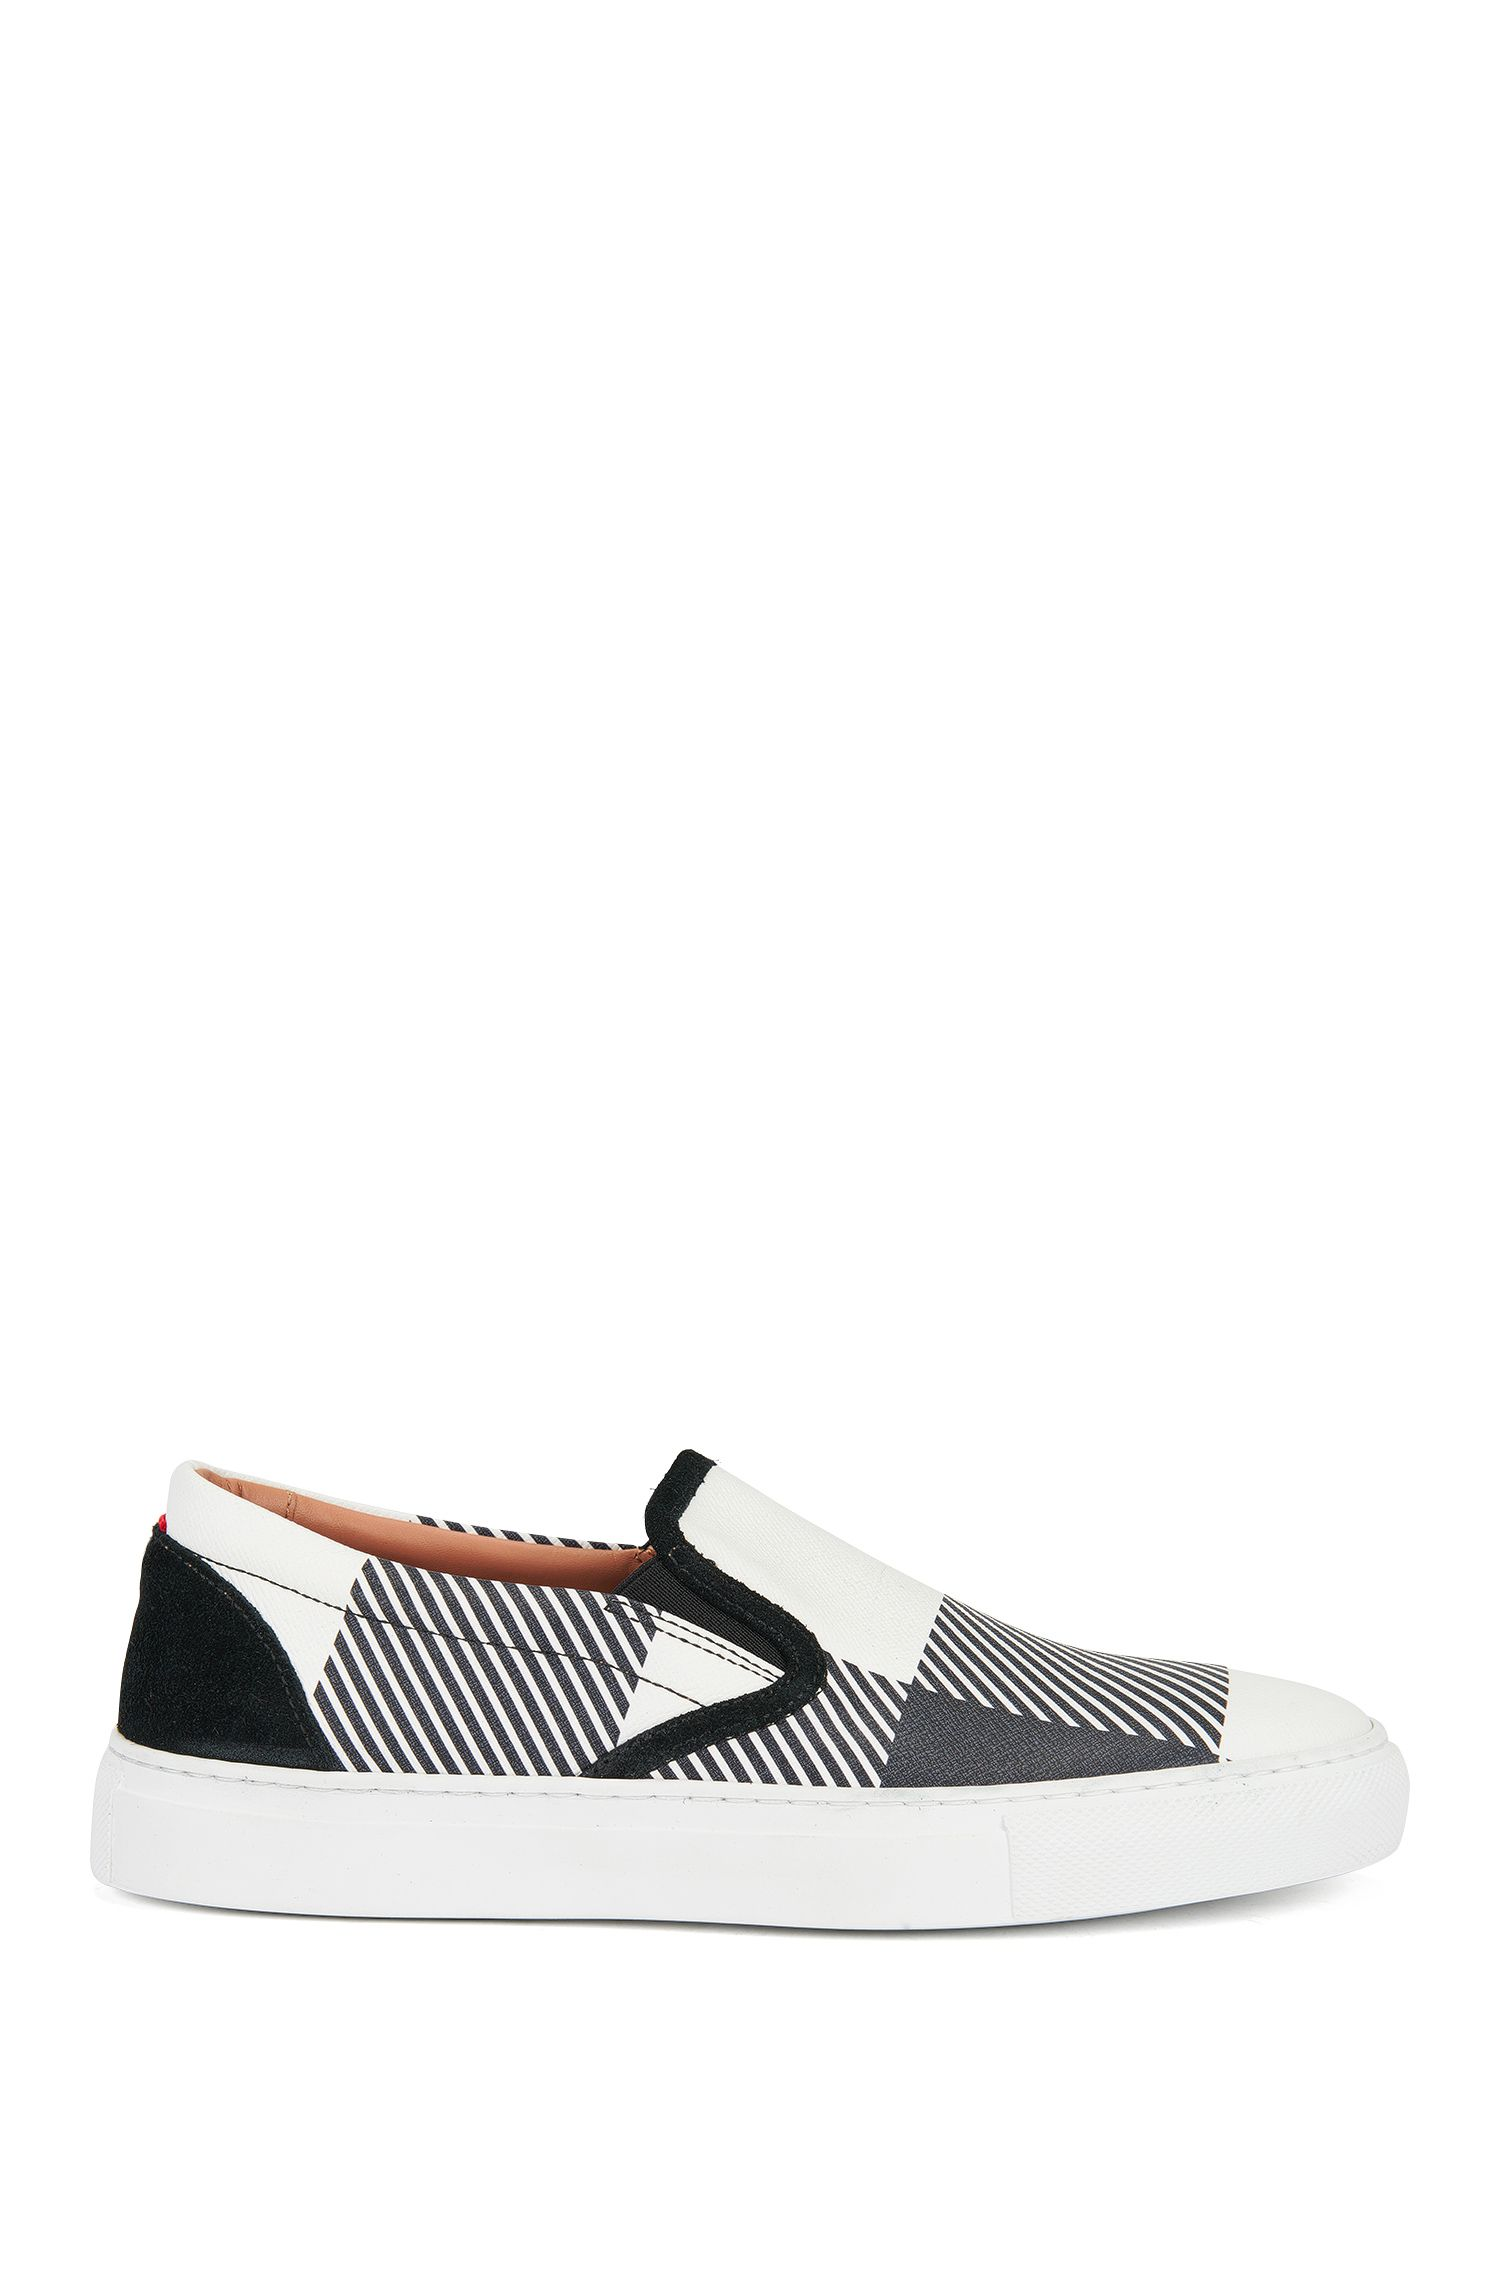 Leather Slip-On Shoe | Slip On-ST